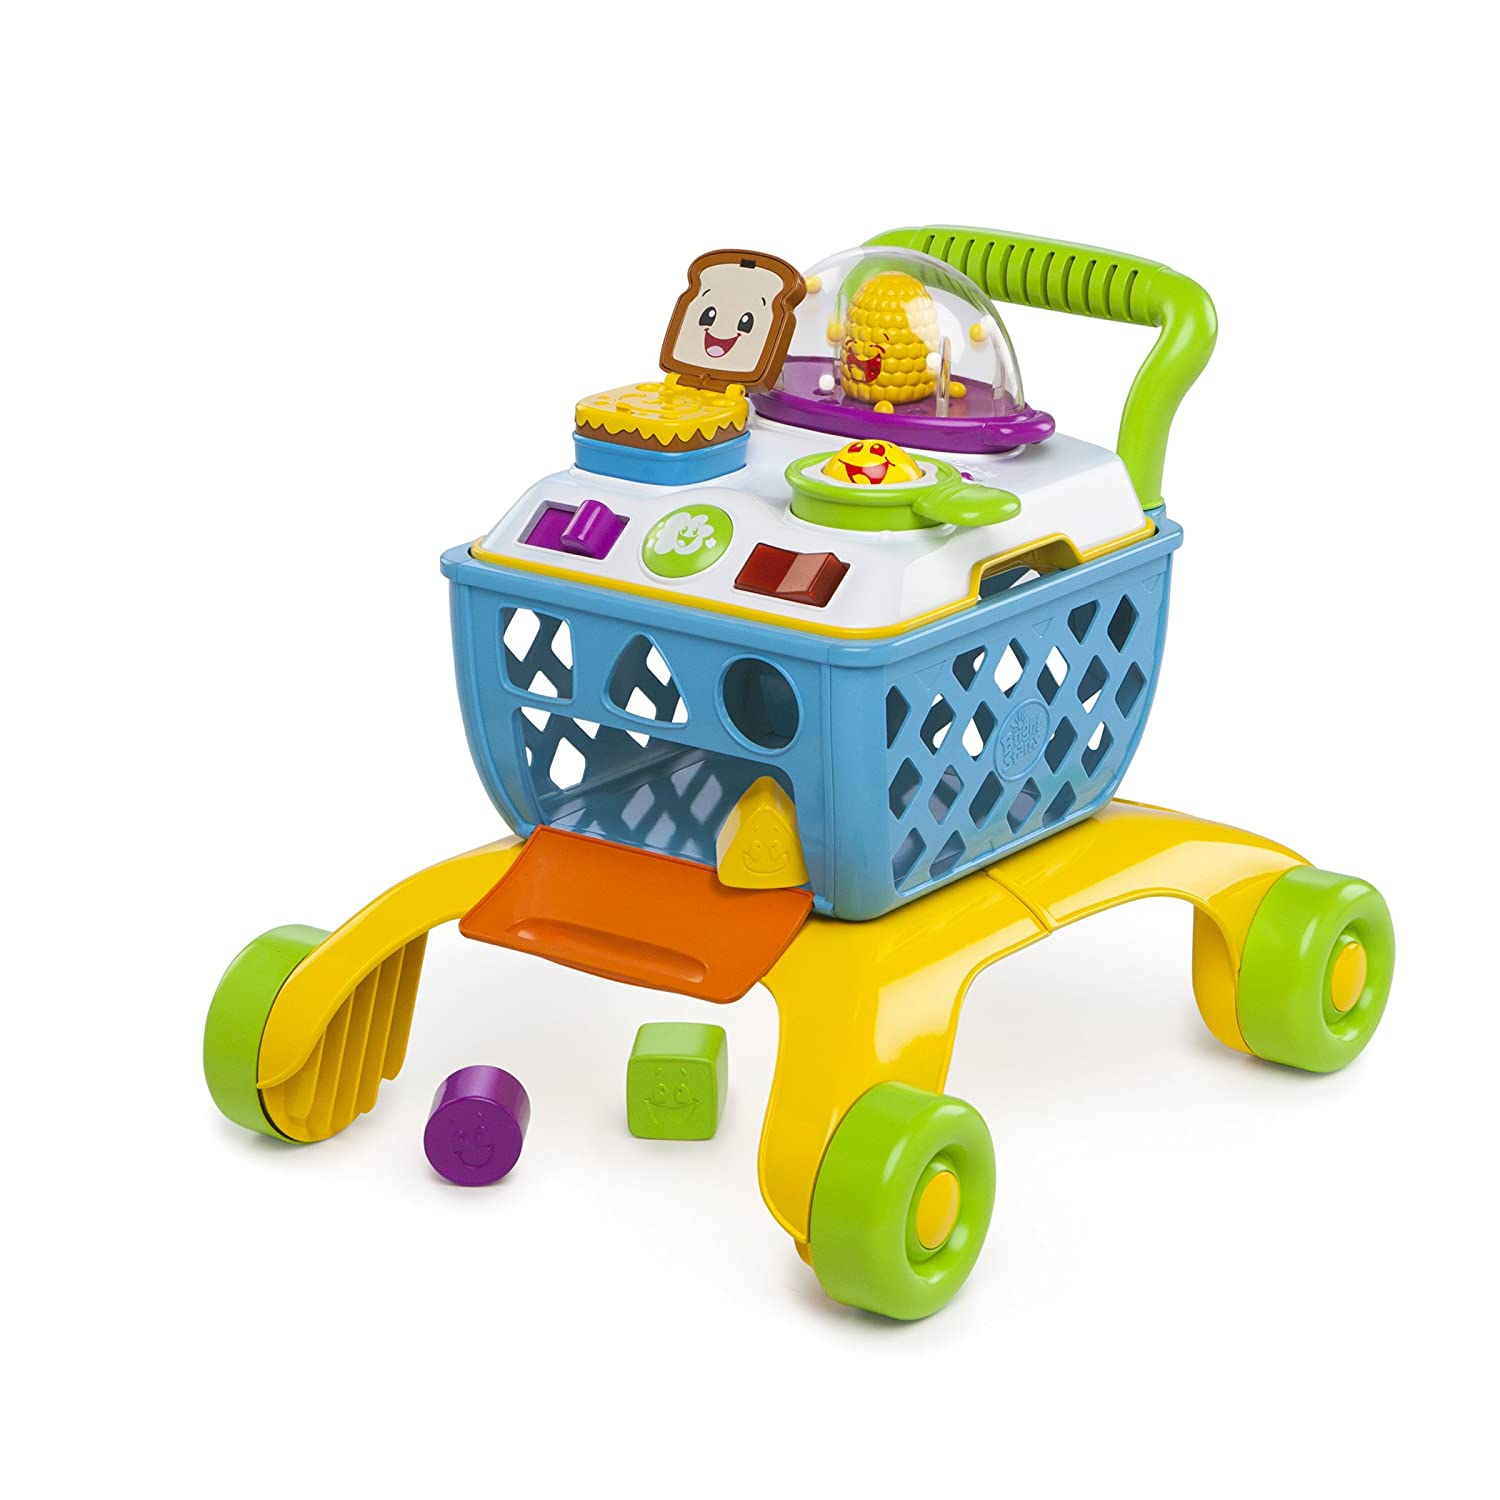 Top 15 Best Walking Toys for 1 Year Olds Mothers Should Consider 6